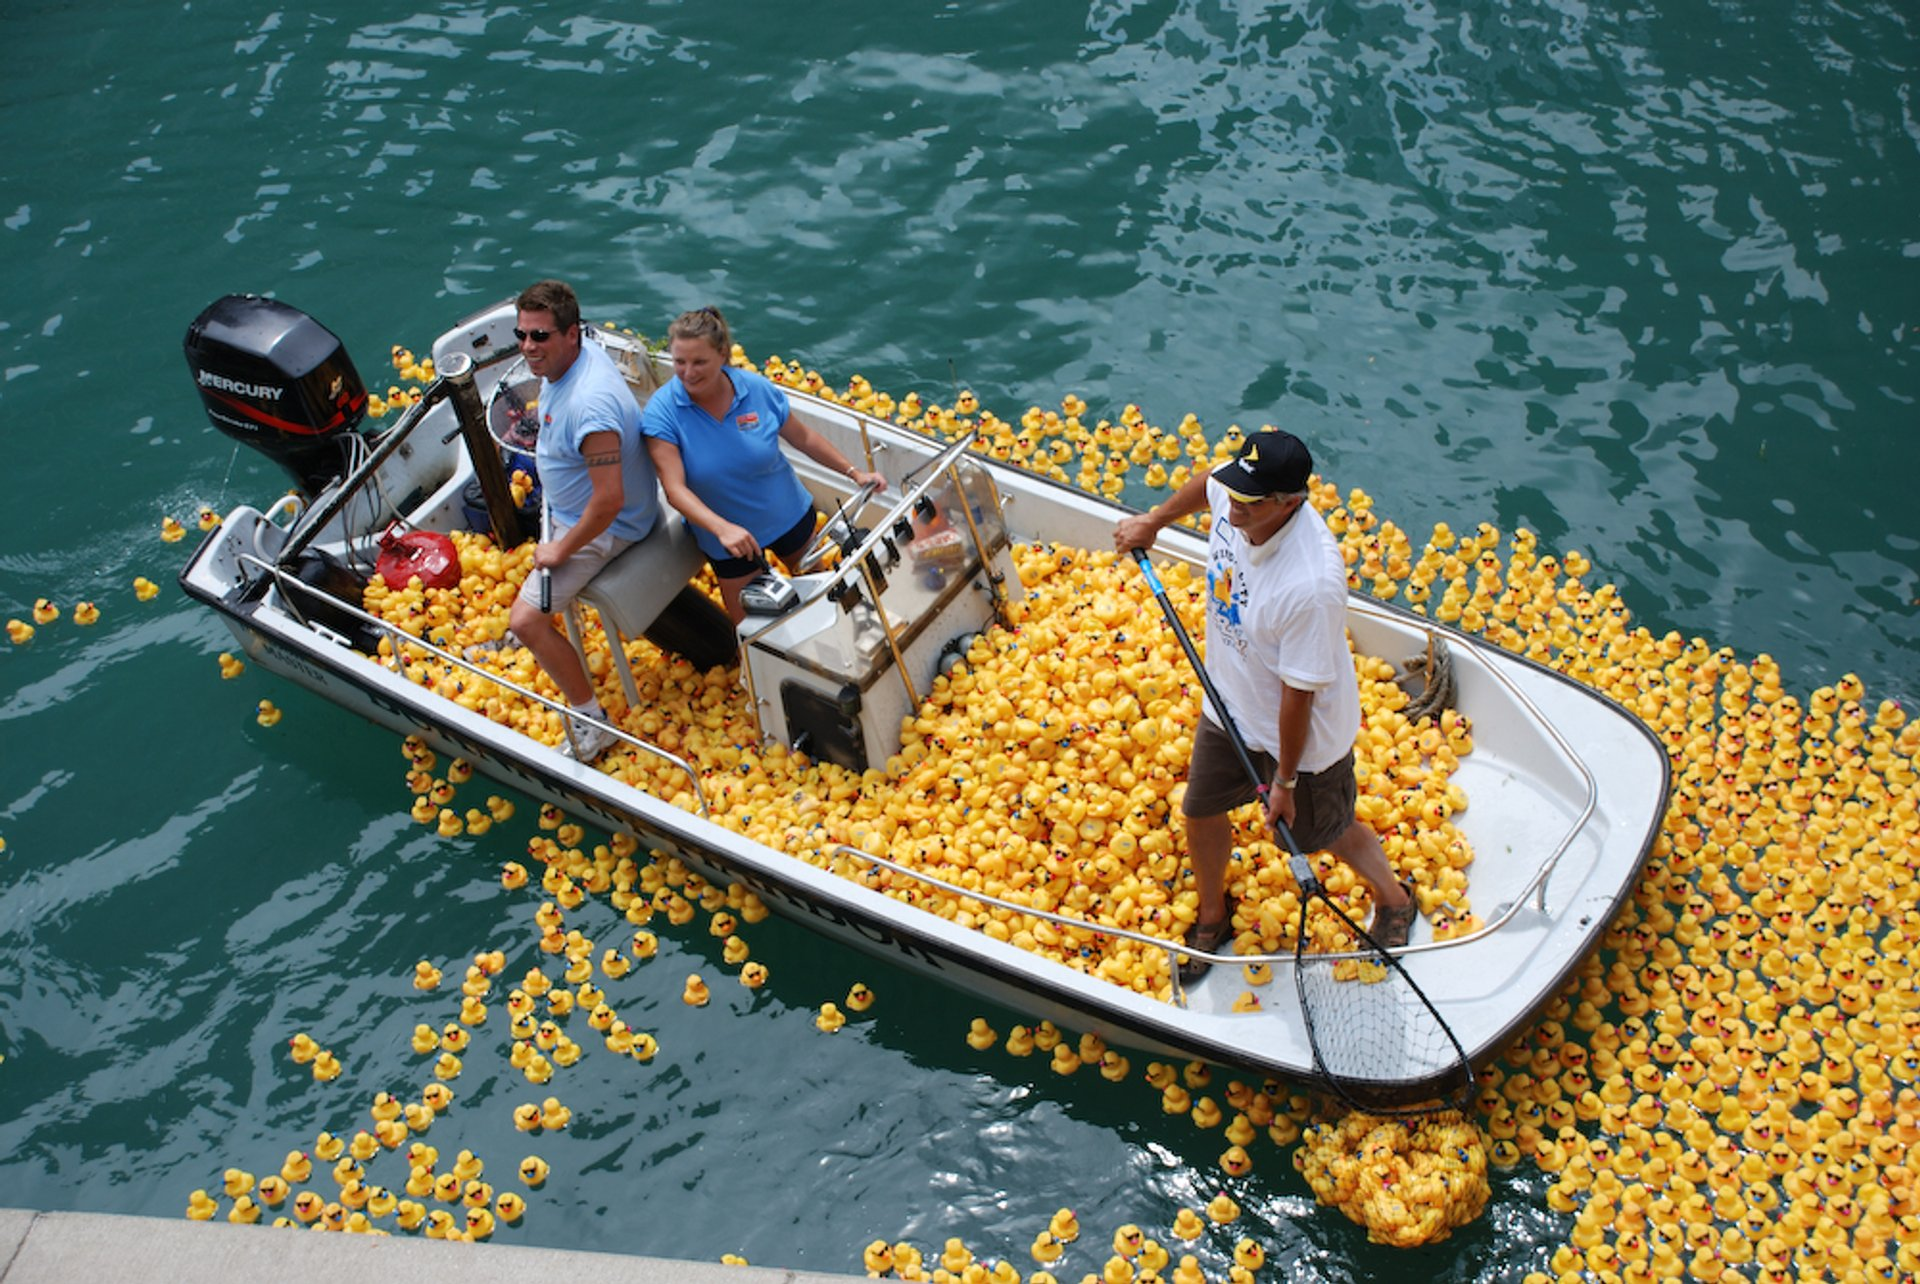 Yellow plastic ducks in Chicago River 2020